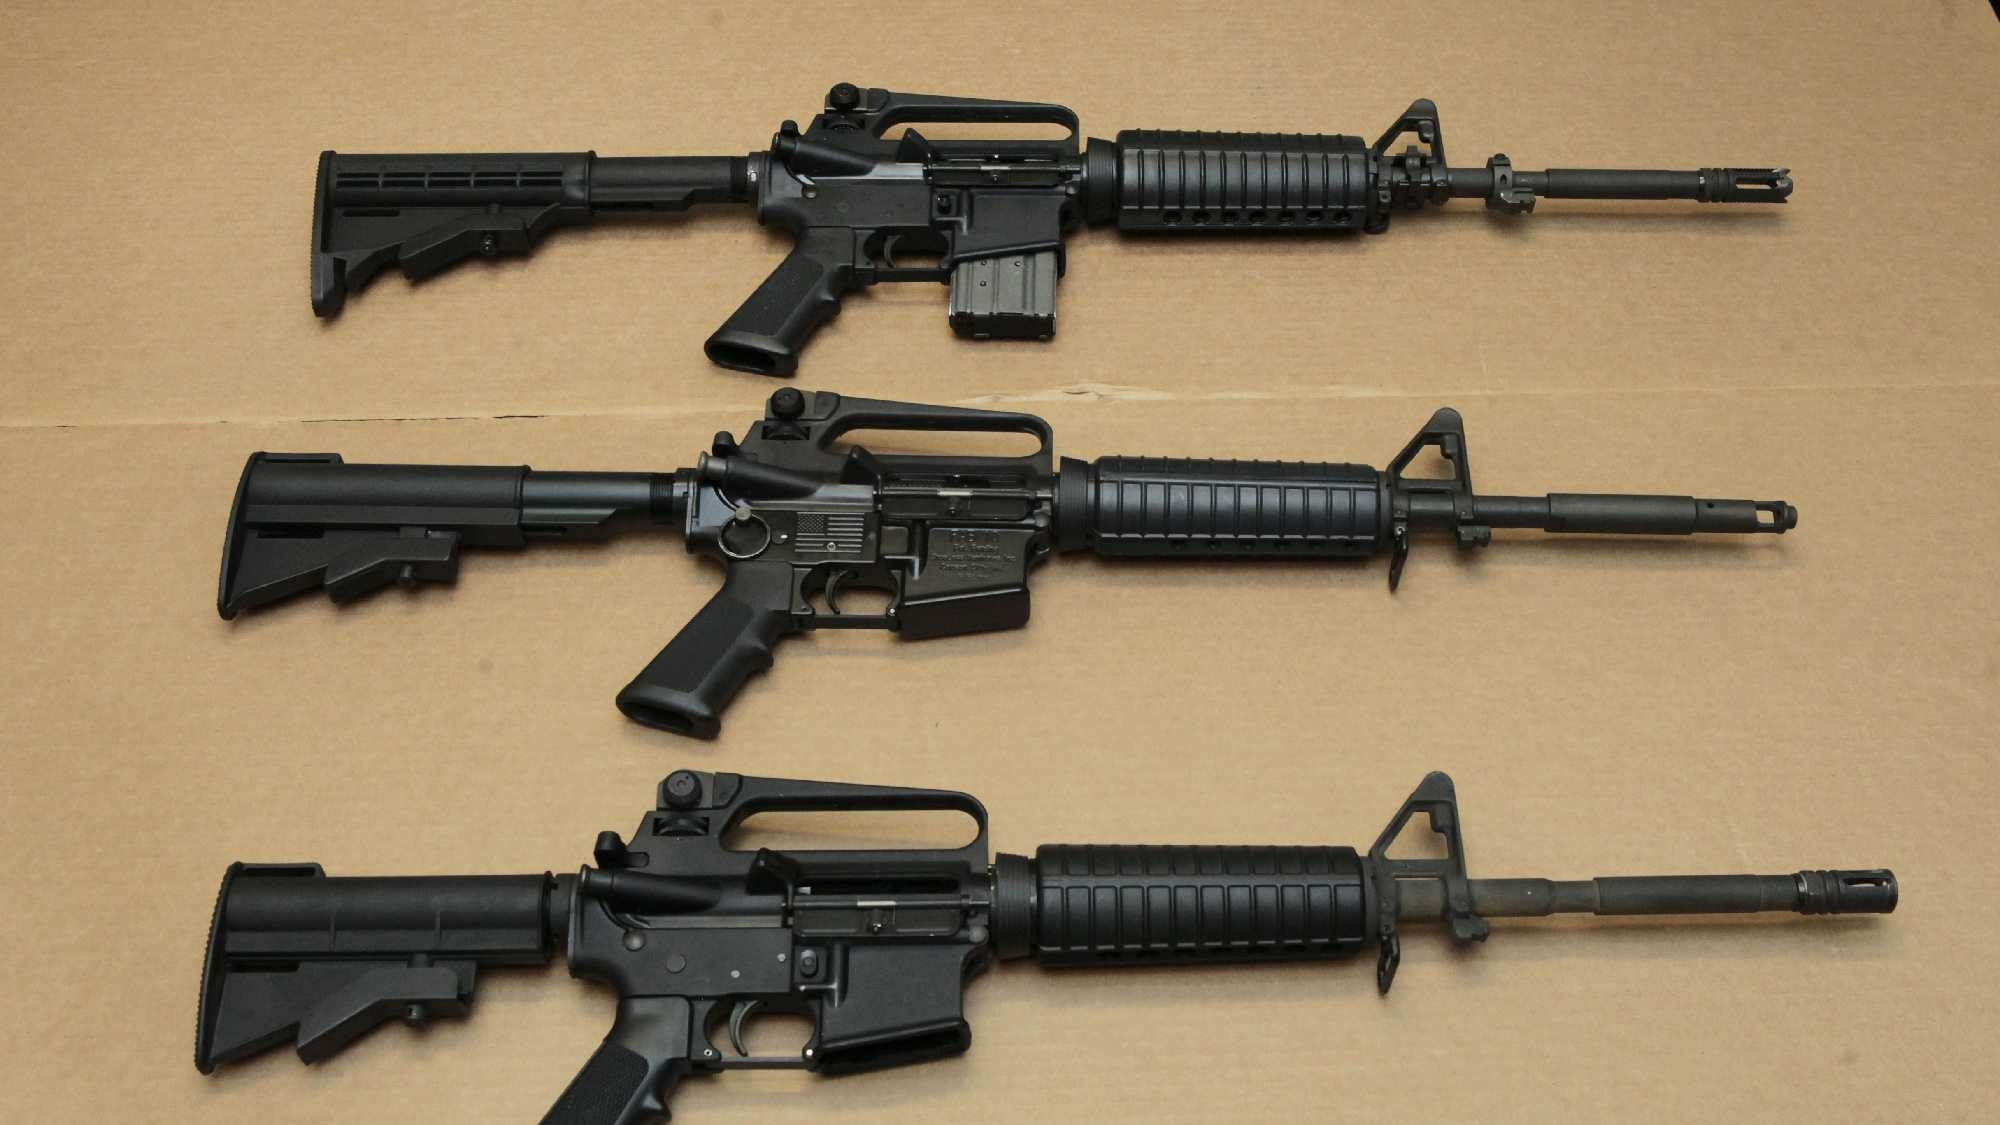 In this Aug. 15, 2012 file photo, three variations of the AR-15 assault rifle are displayed at the California Department of Justice in Sacramento, Calif. While the guns look similar, the bottom version is illegal in California because of its quick reload capabilities. Omar Mateen used an AR-15 that he purchased legally when he killed 49 people in an Orlando nightclub.